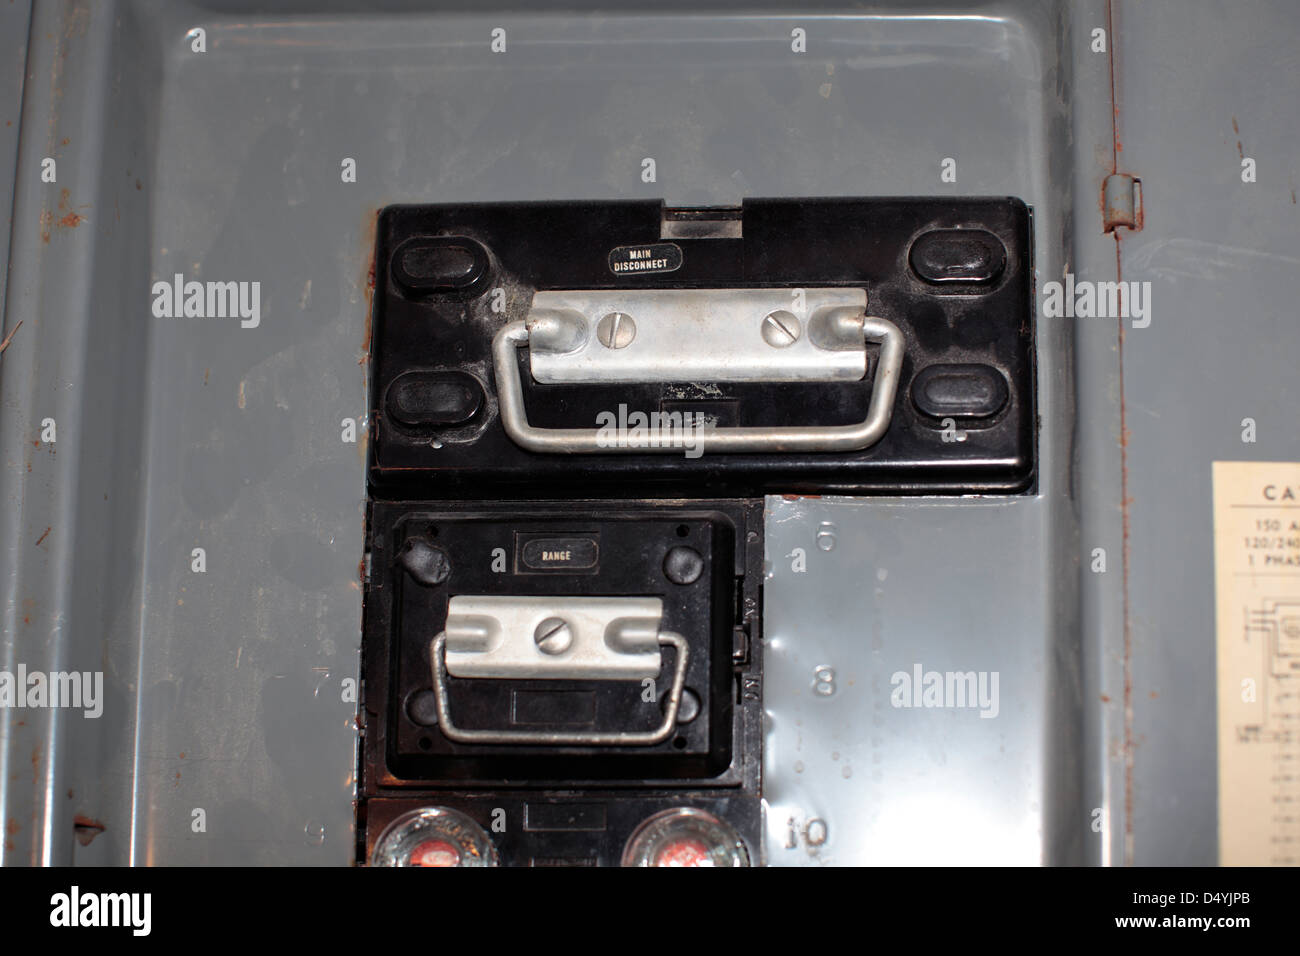 Pullout breakers in home electrical panel Stock Photo: 54697171 - Alamy